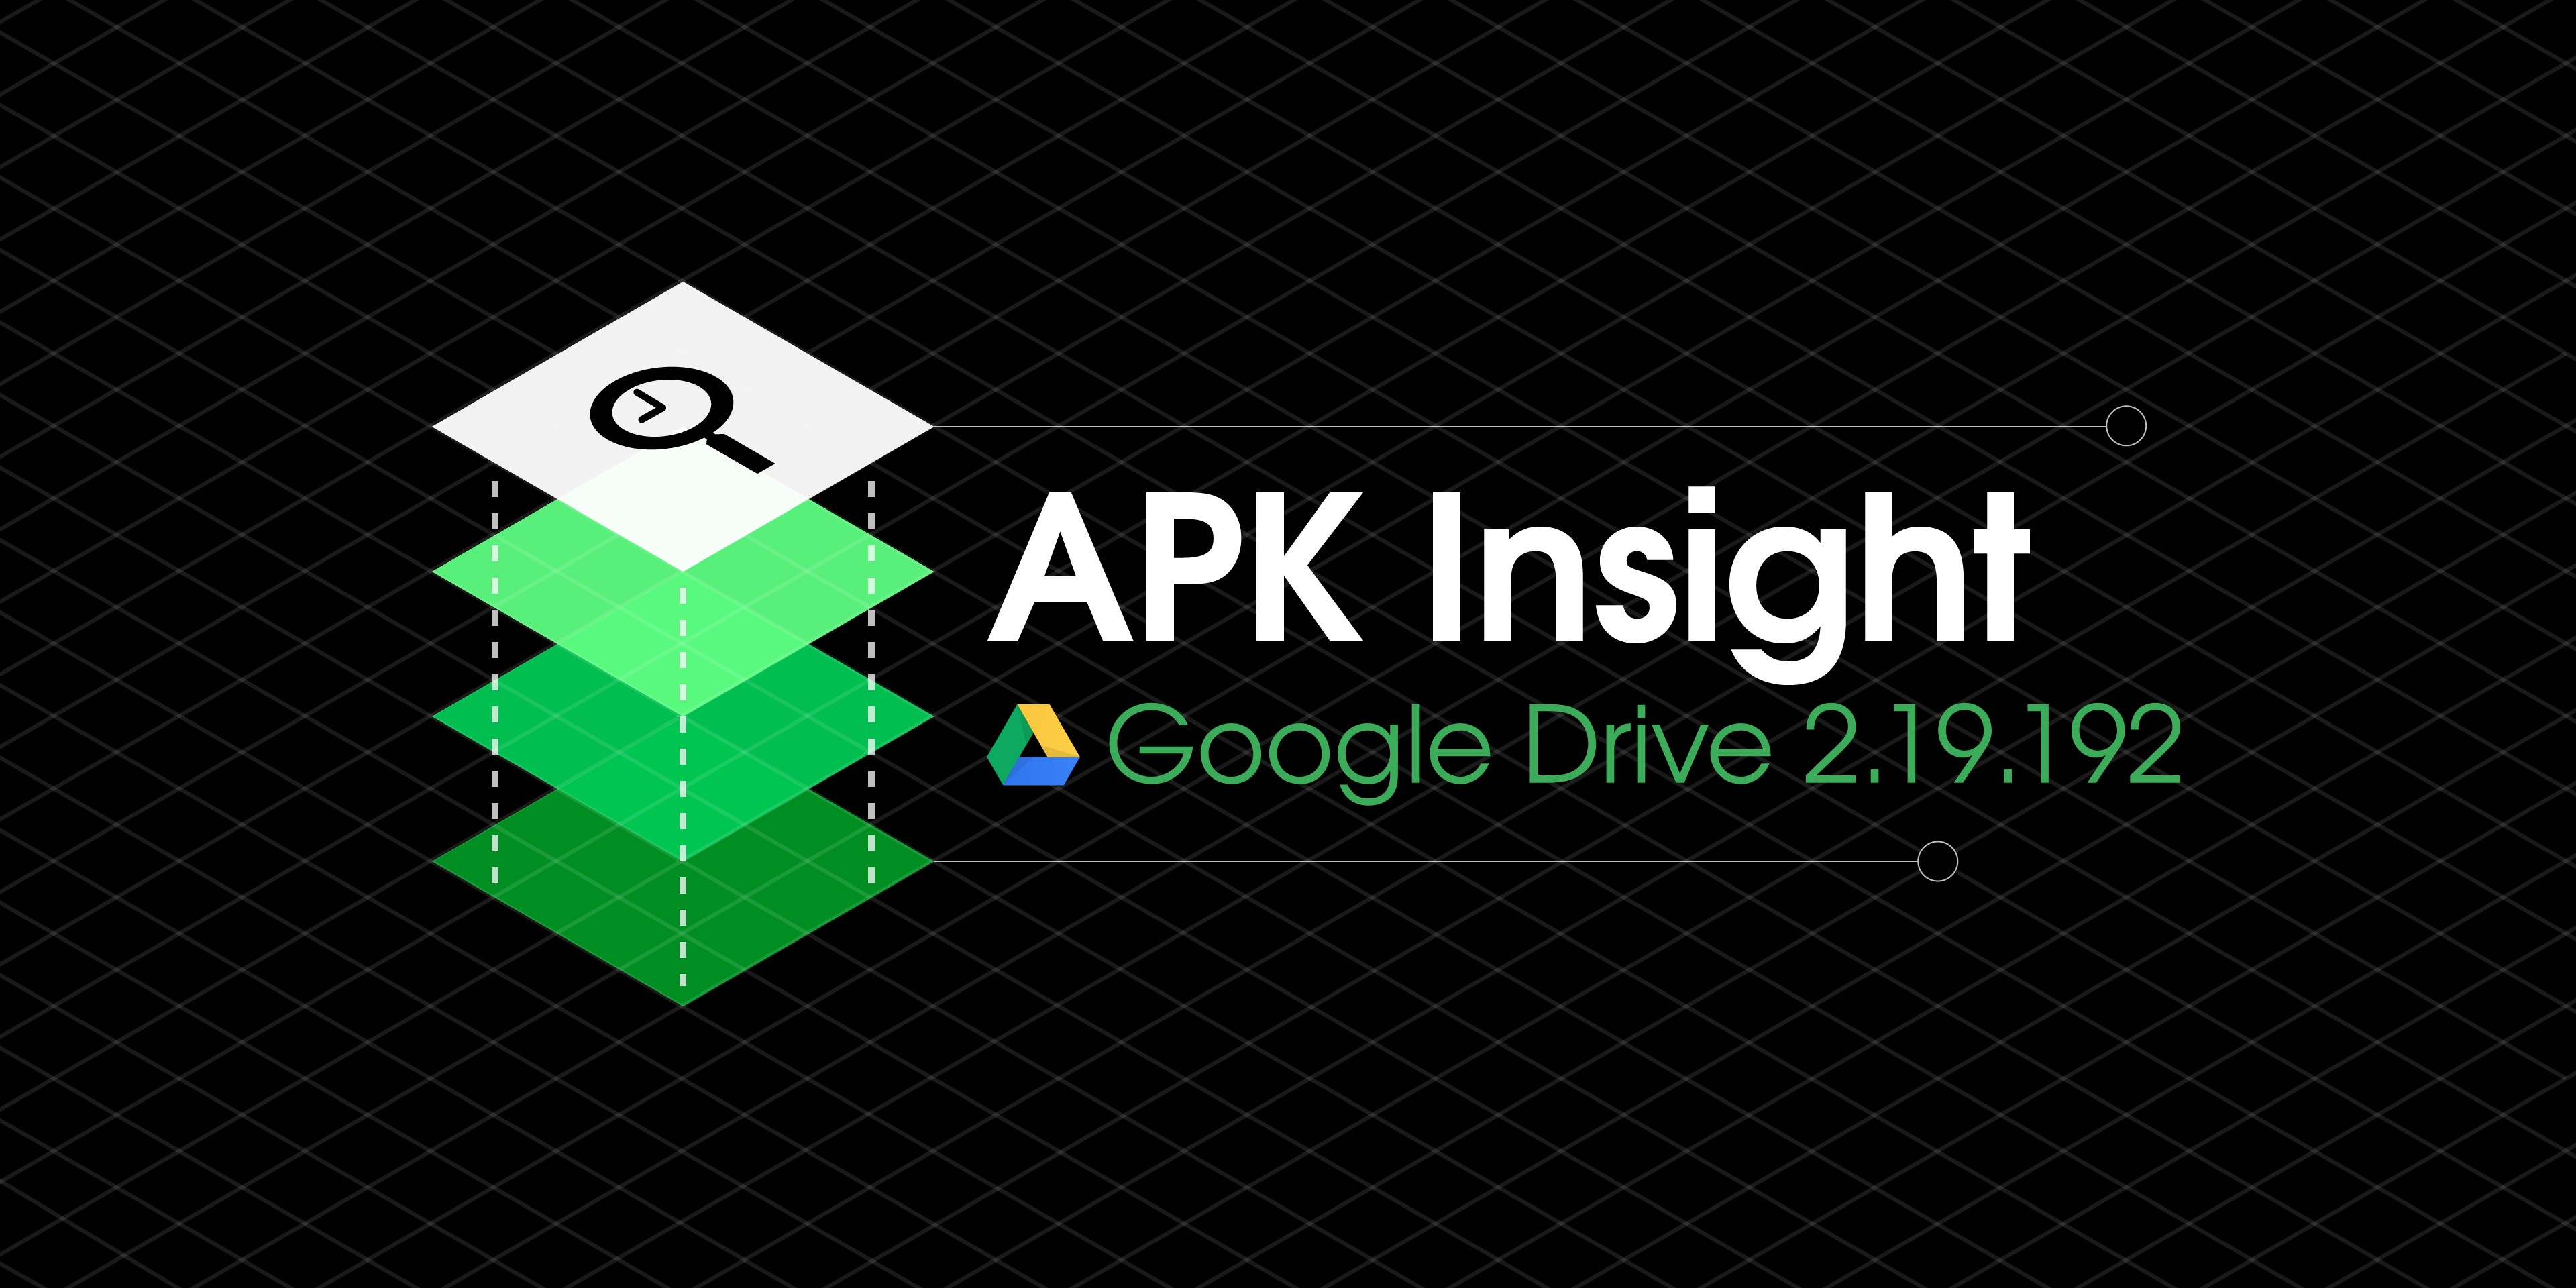 Google Drive may stop syncing your Google Photos starting in July [APK Insight]